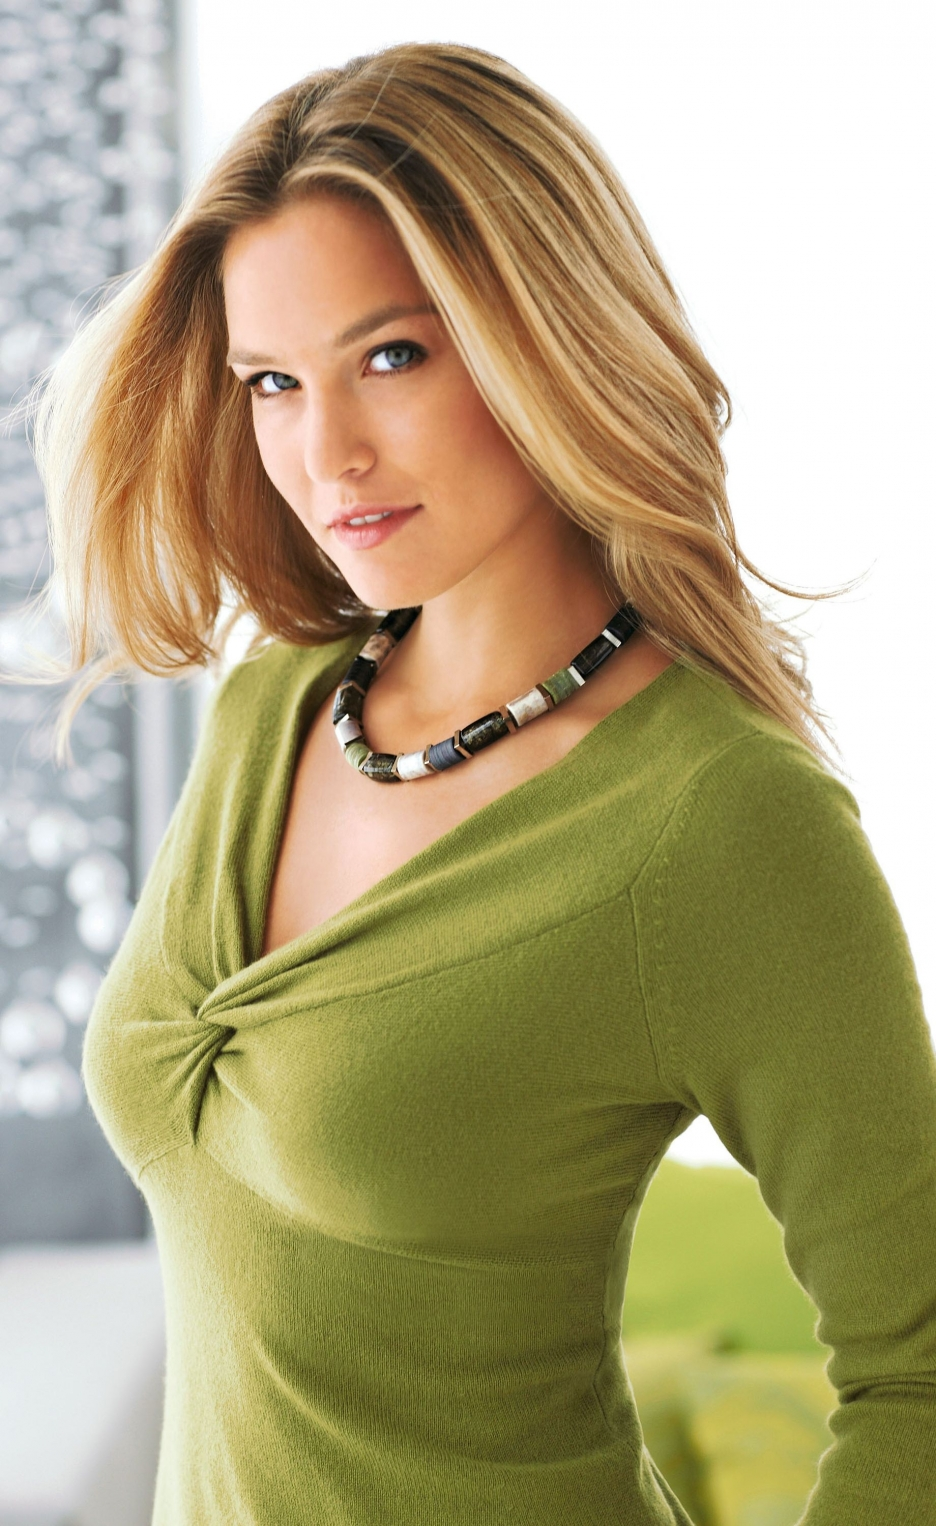 All Top Hollywood Celebrities: Bar Refaeli Pictures/Images ... Rosie Huntington Whiteley Bio